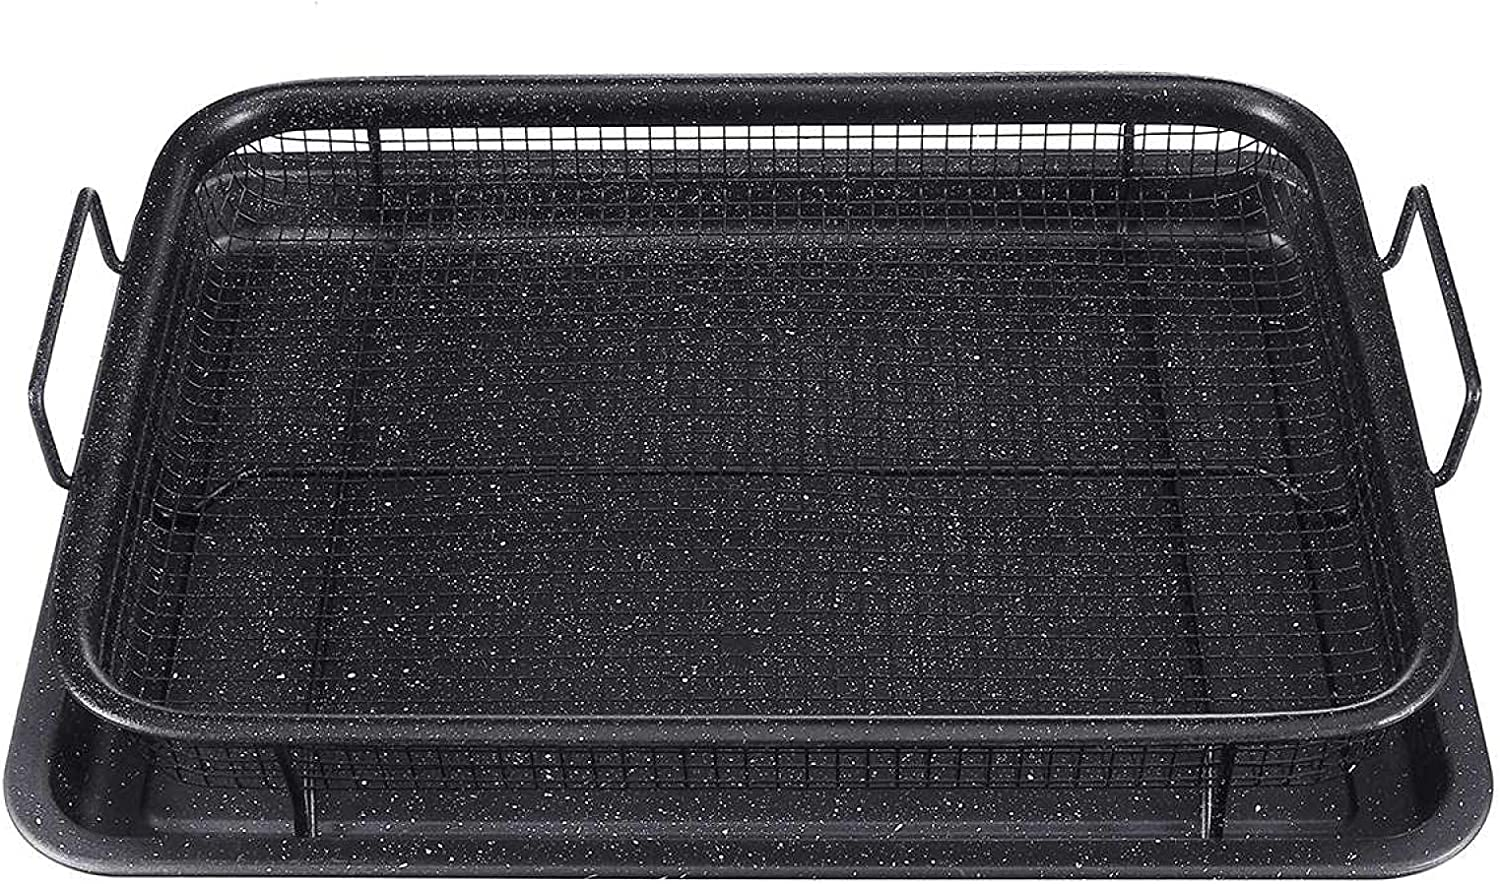 air Fryer Basket 2-2-Pieces Nonstick Oven Air Fryer Pan/Tray & Mesh Basket Set - Air Fryer in Oven - Ideal for French Fry - Frozen Food